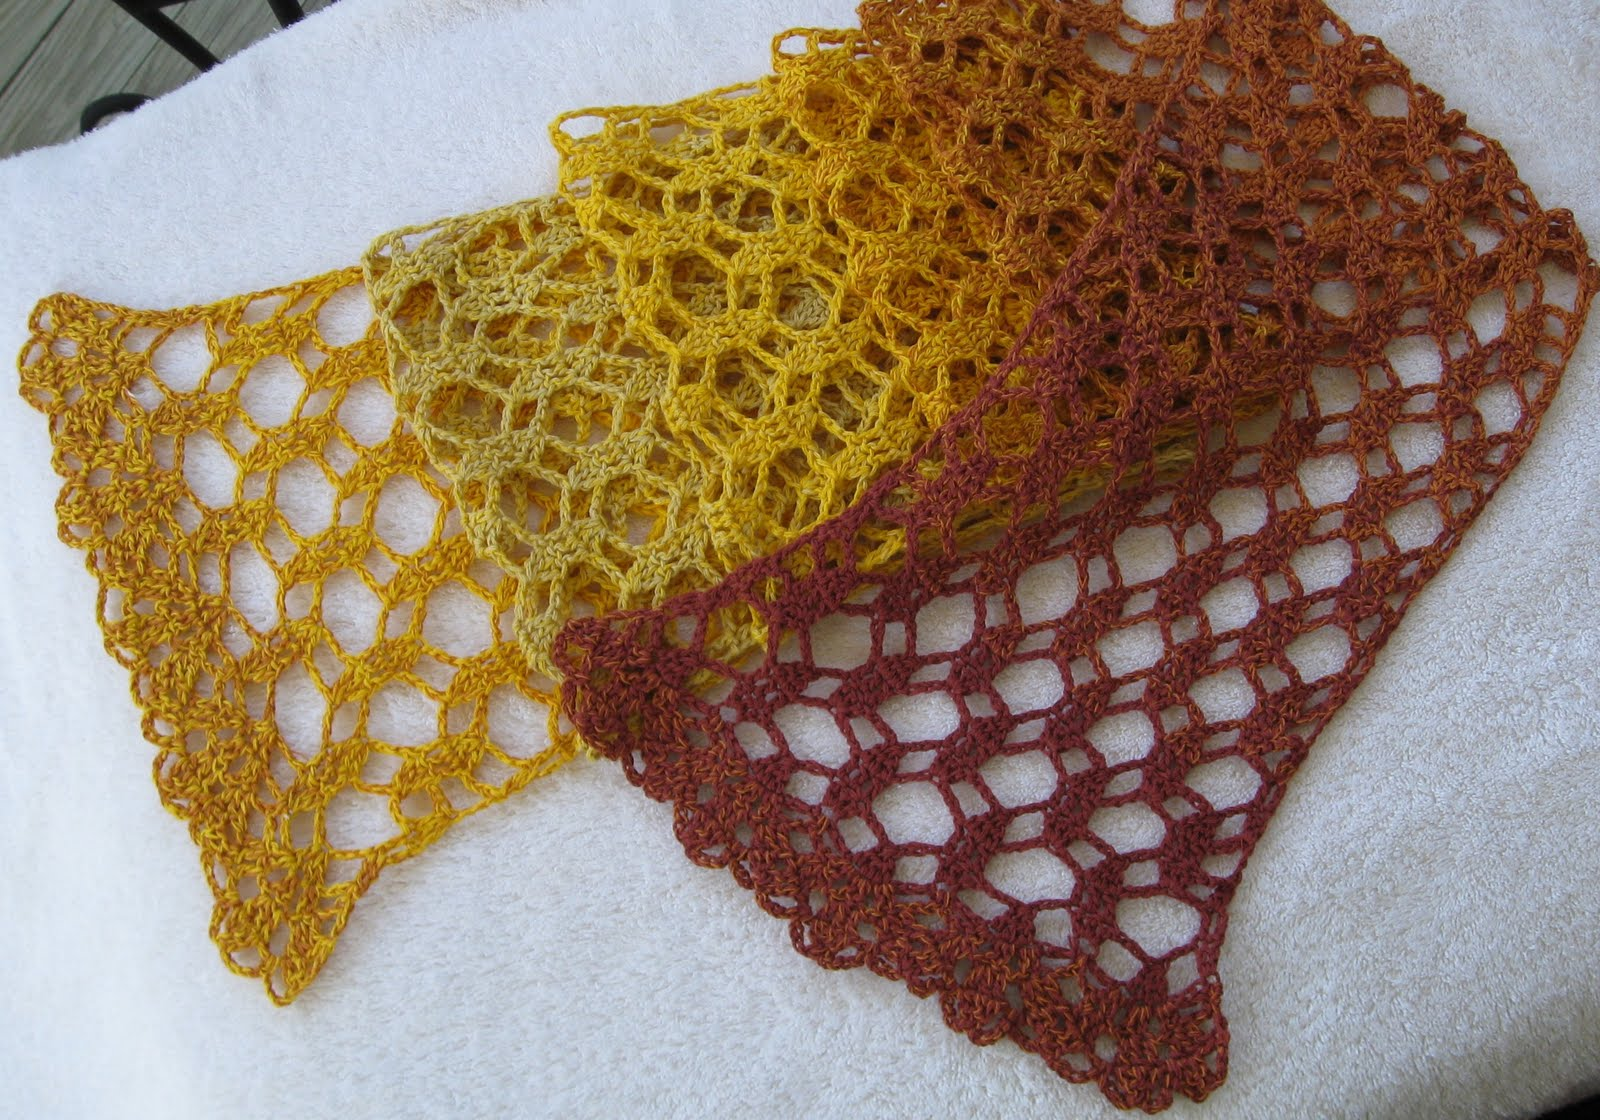 see i do still work with yarn and very lovely yarn it is too